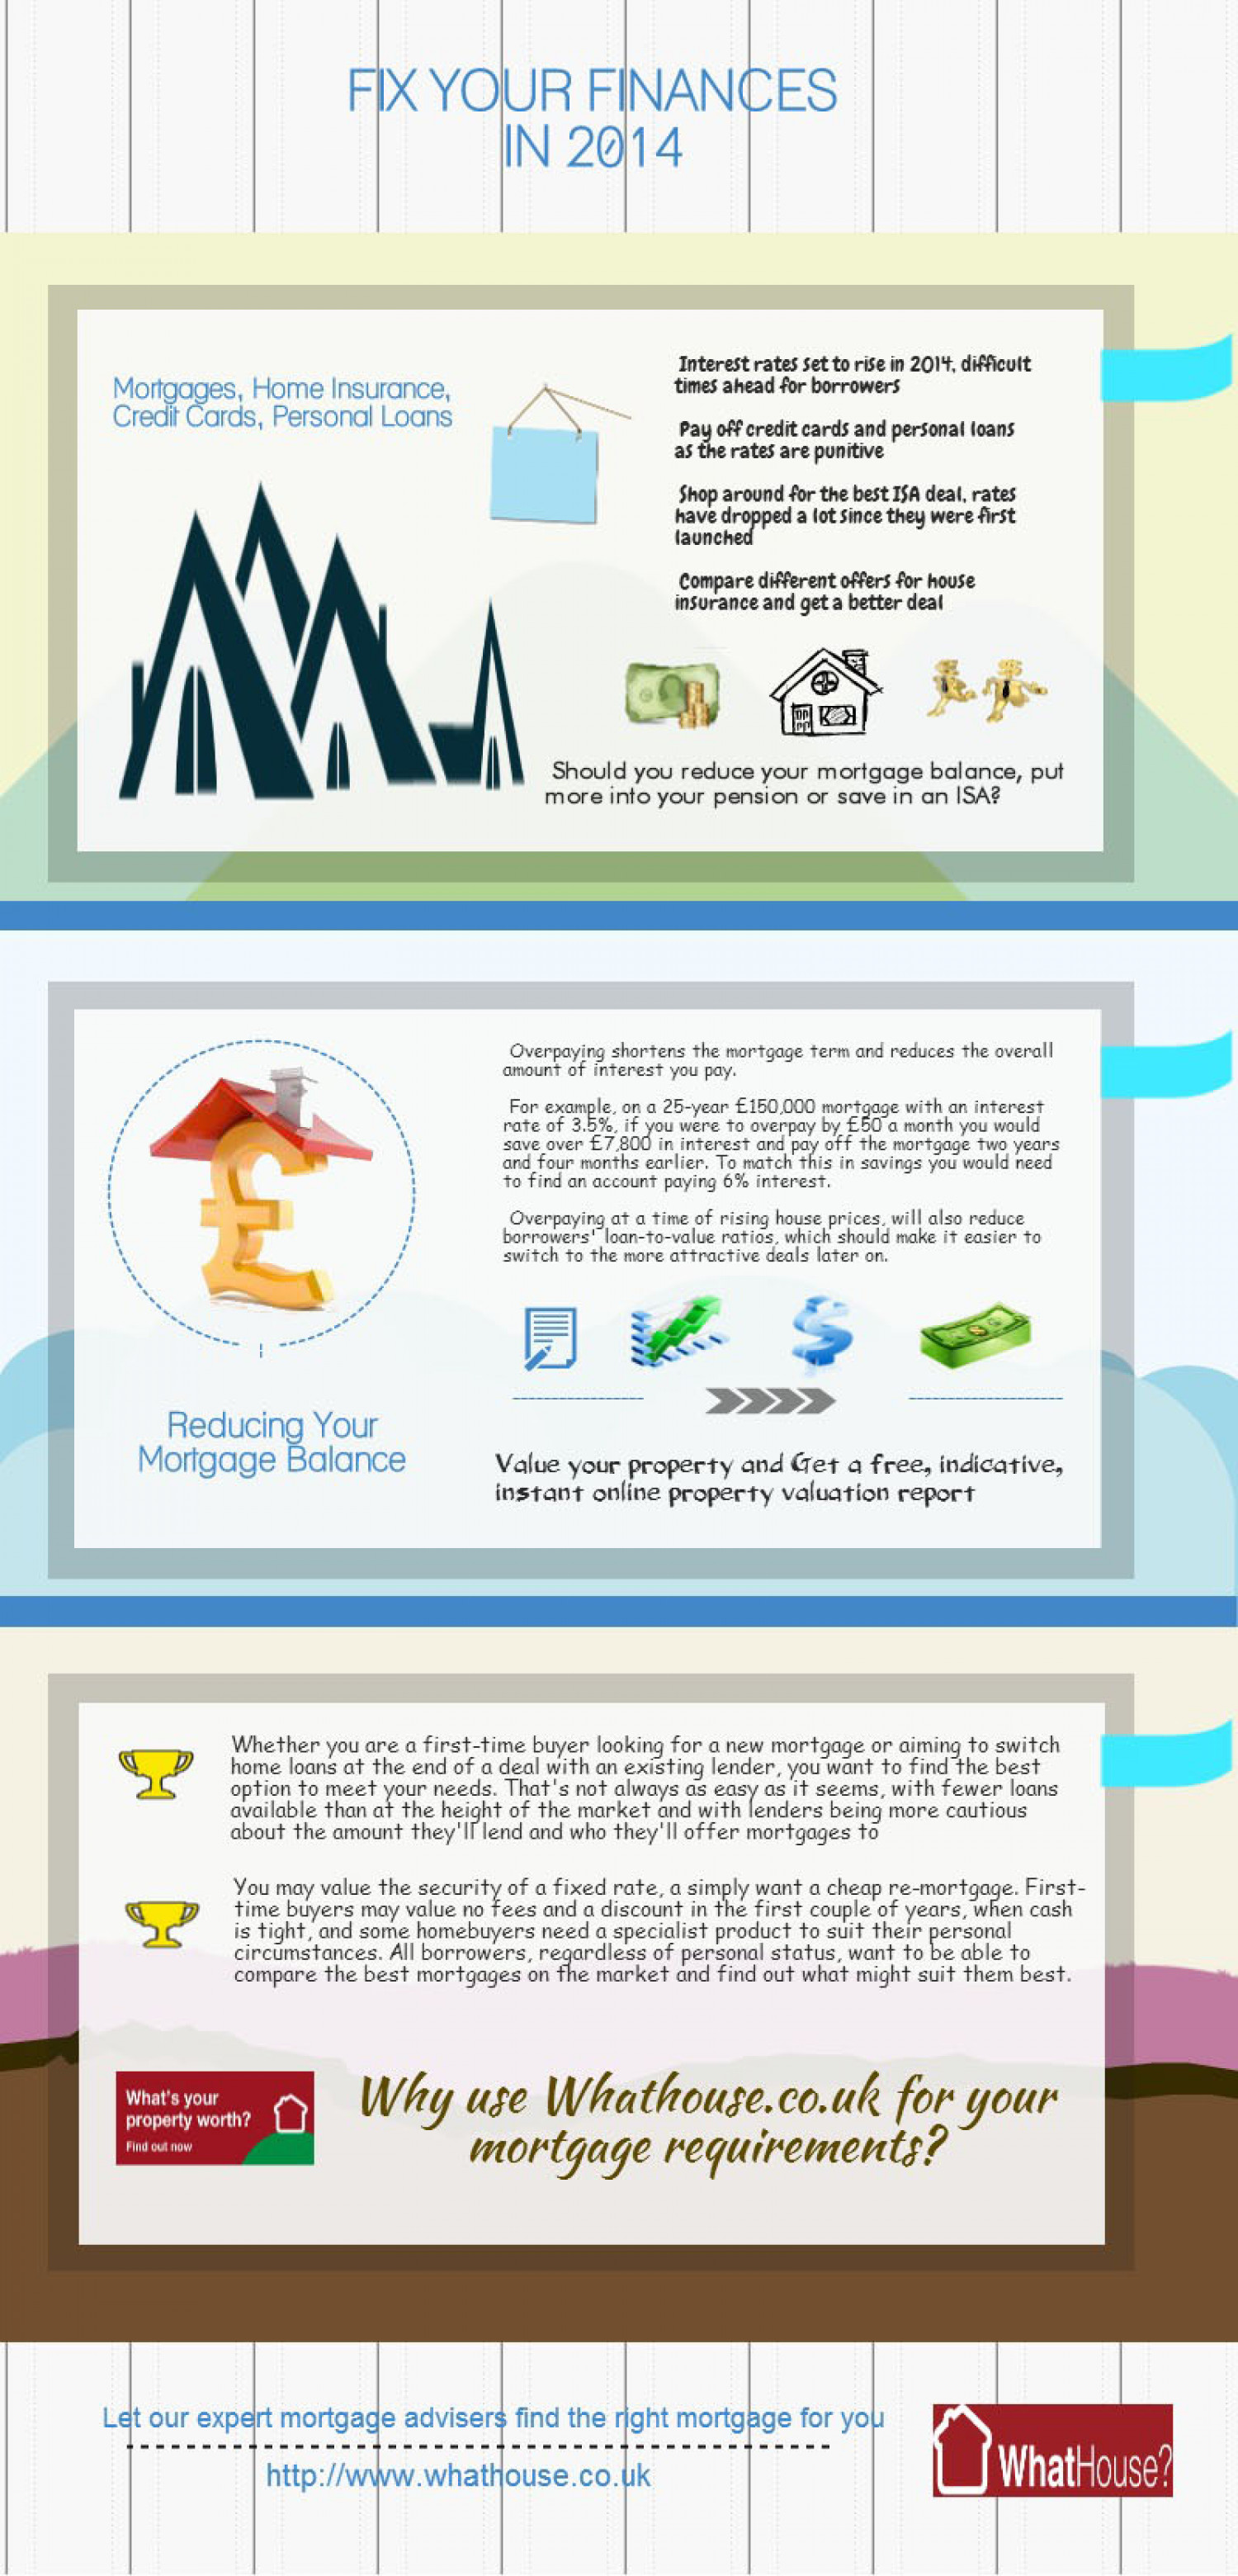 Fix Your Finances Infographic